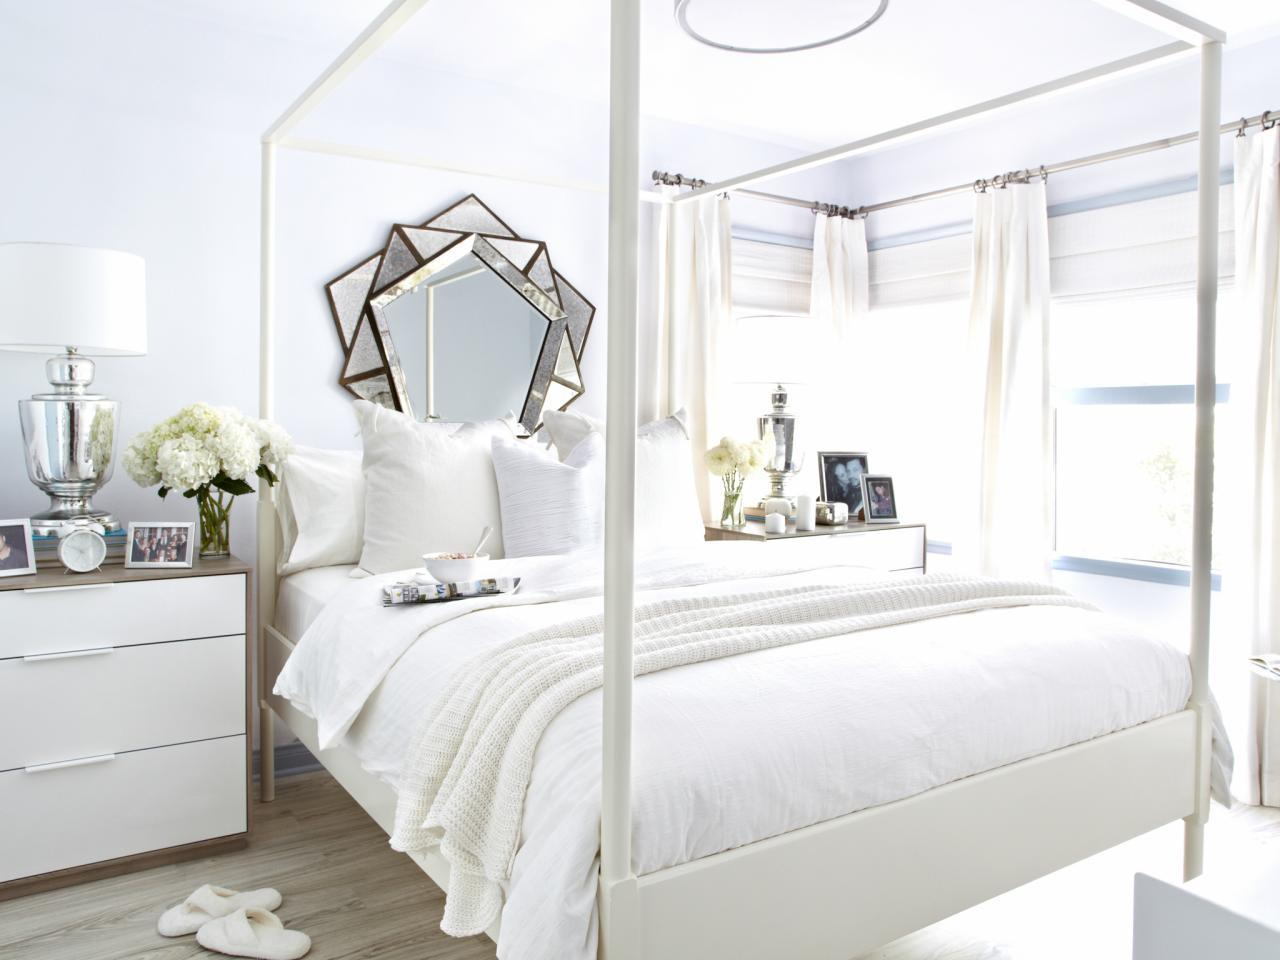 BPF_original_make_all_white_room_work_wide-view-of-bedroom_h.jpg.rend.hgtvcom.1280.960